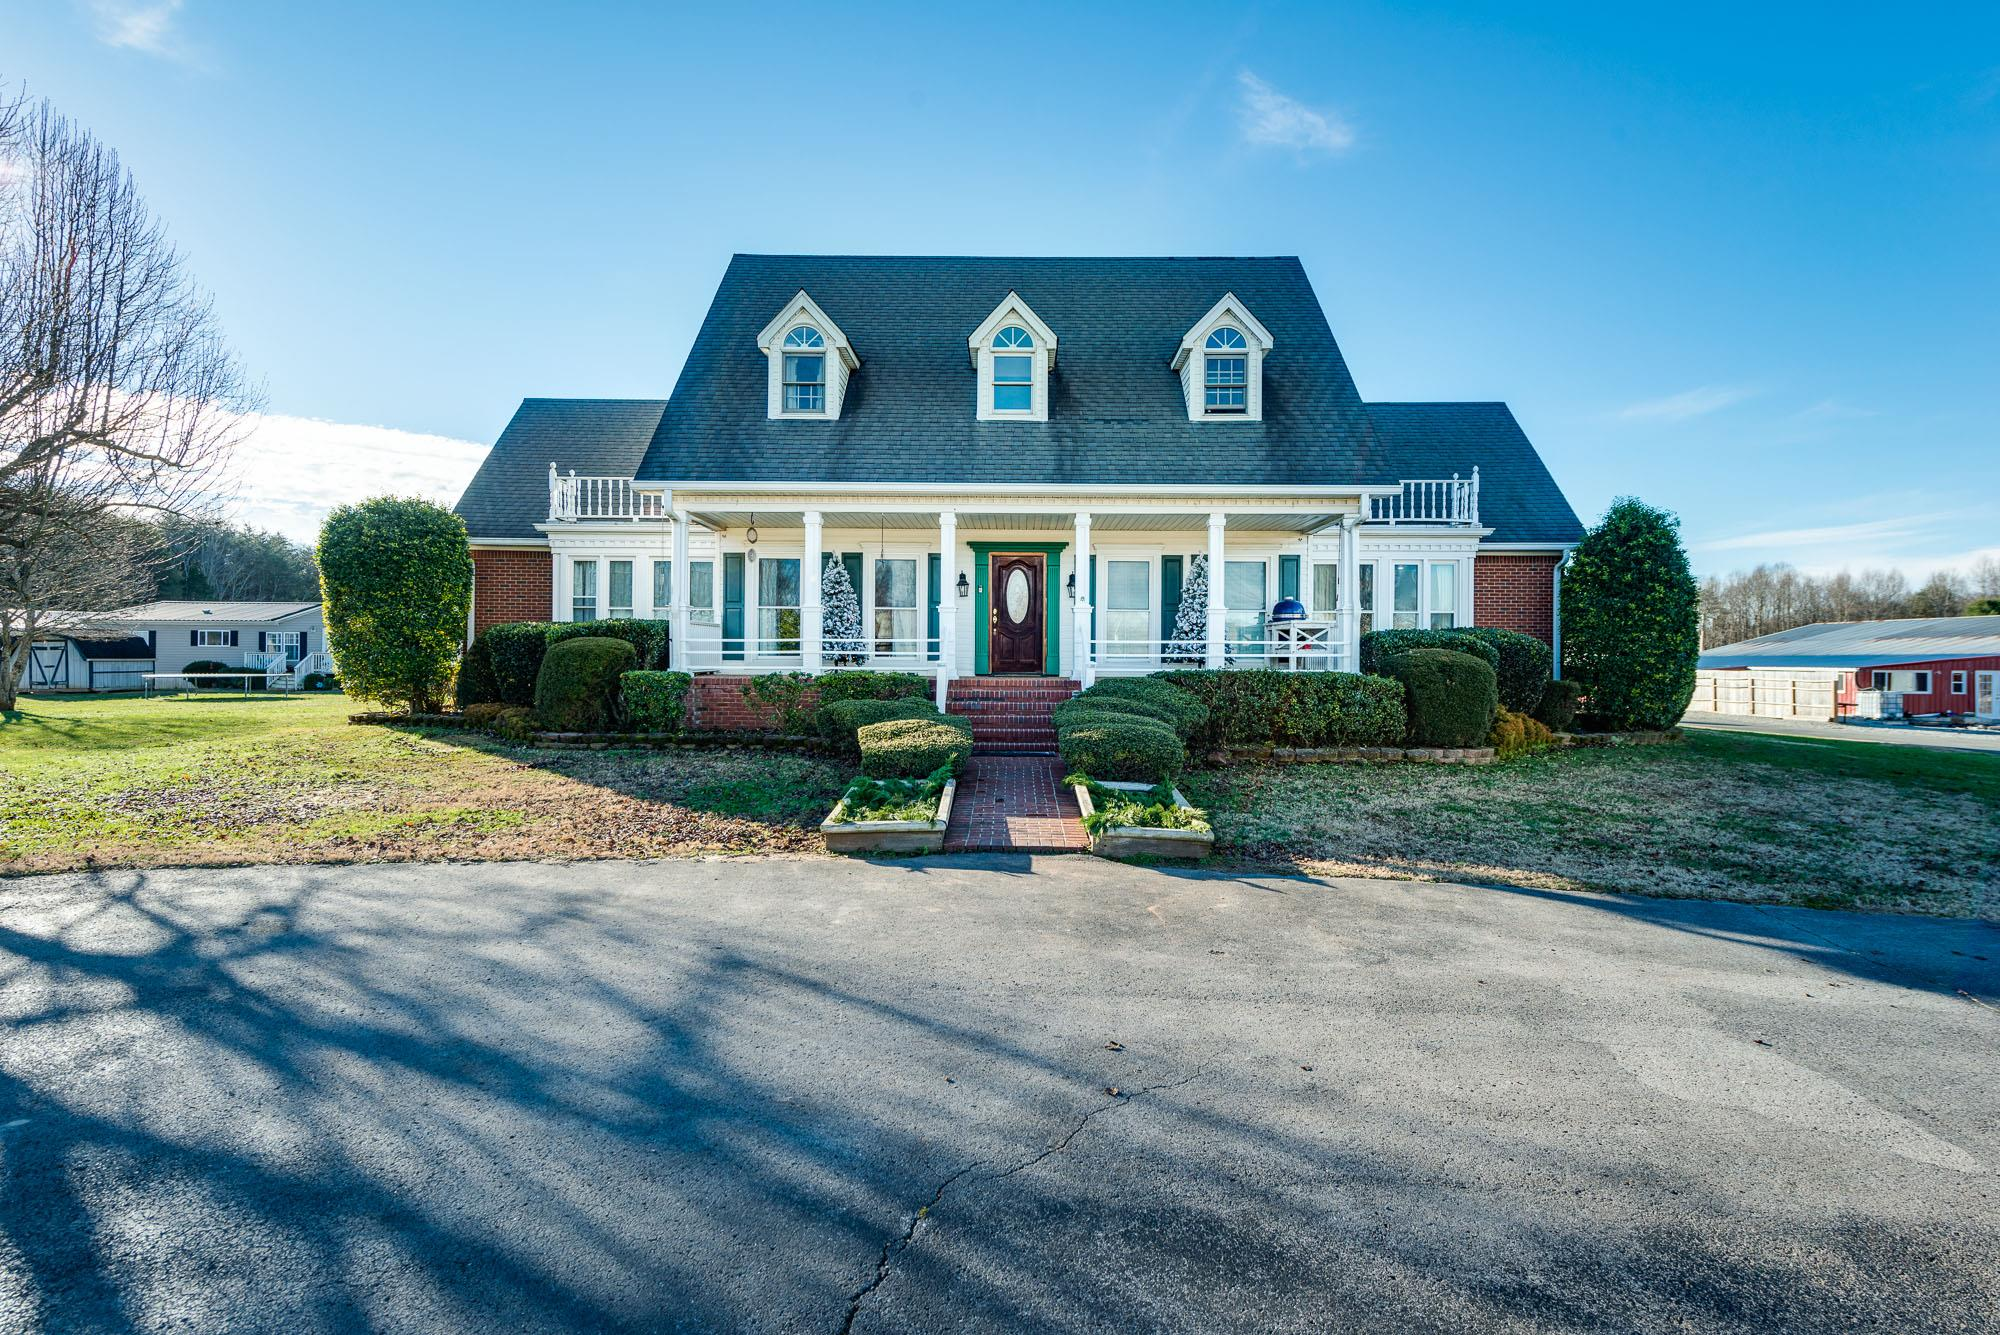 7470 Smith Chapel Rd, Cookeville, TN 38501 - Cookeville, TN real estate listing